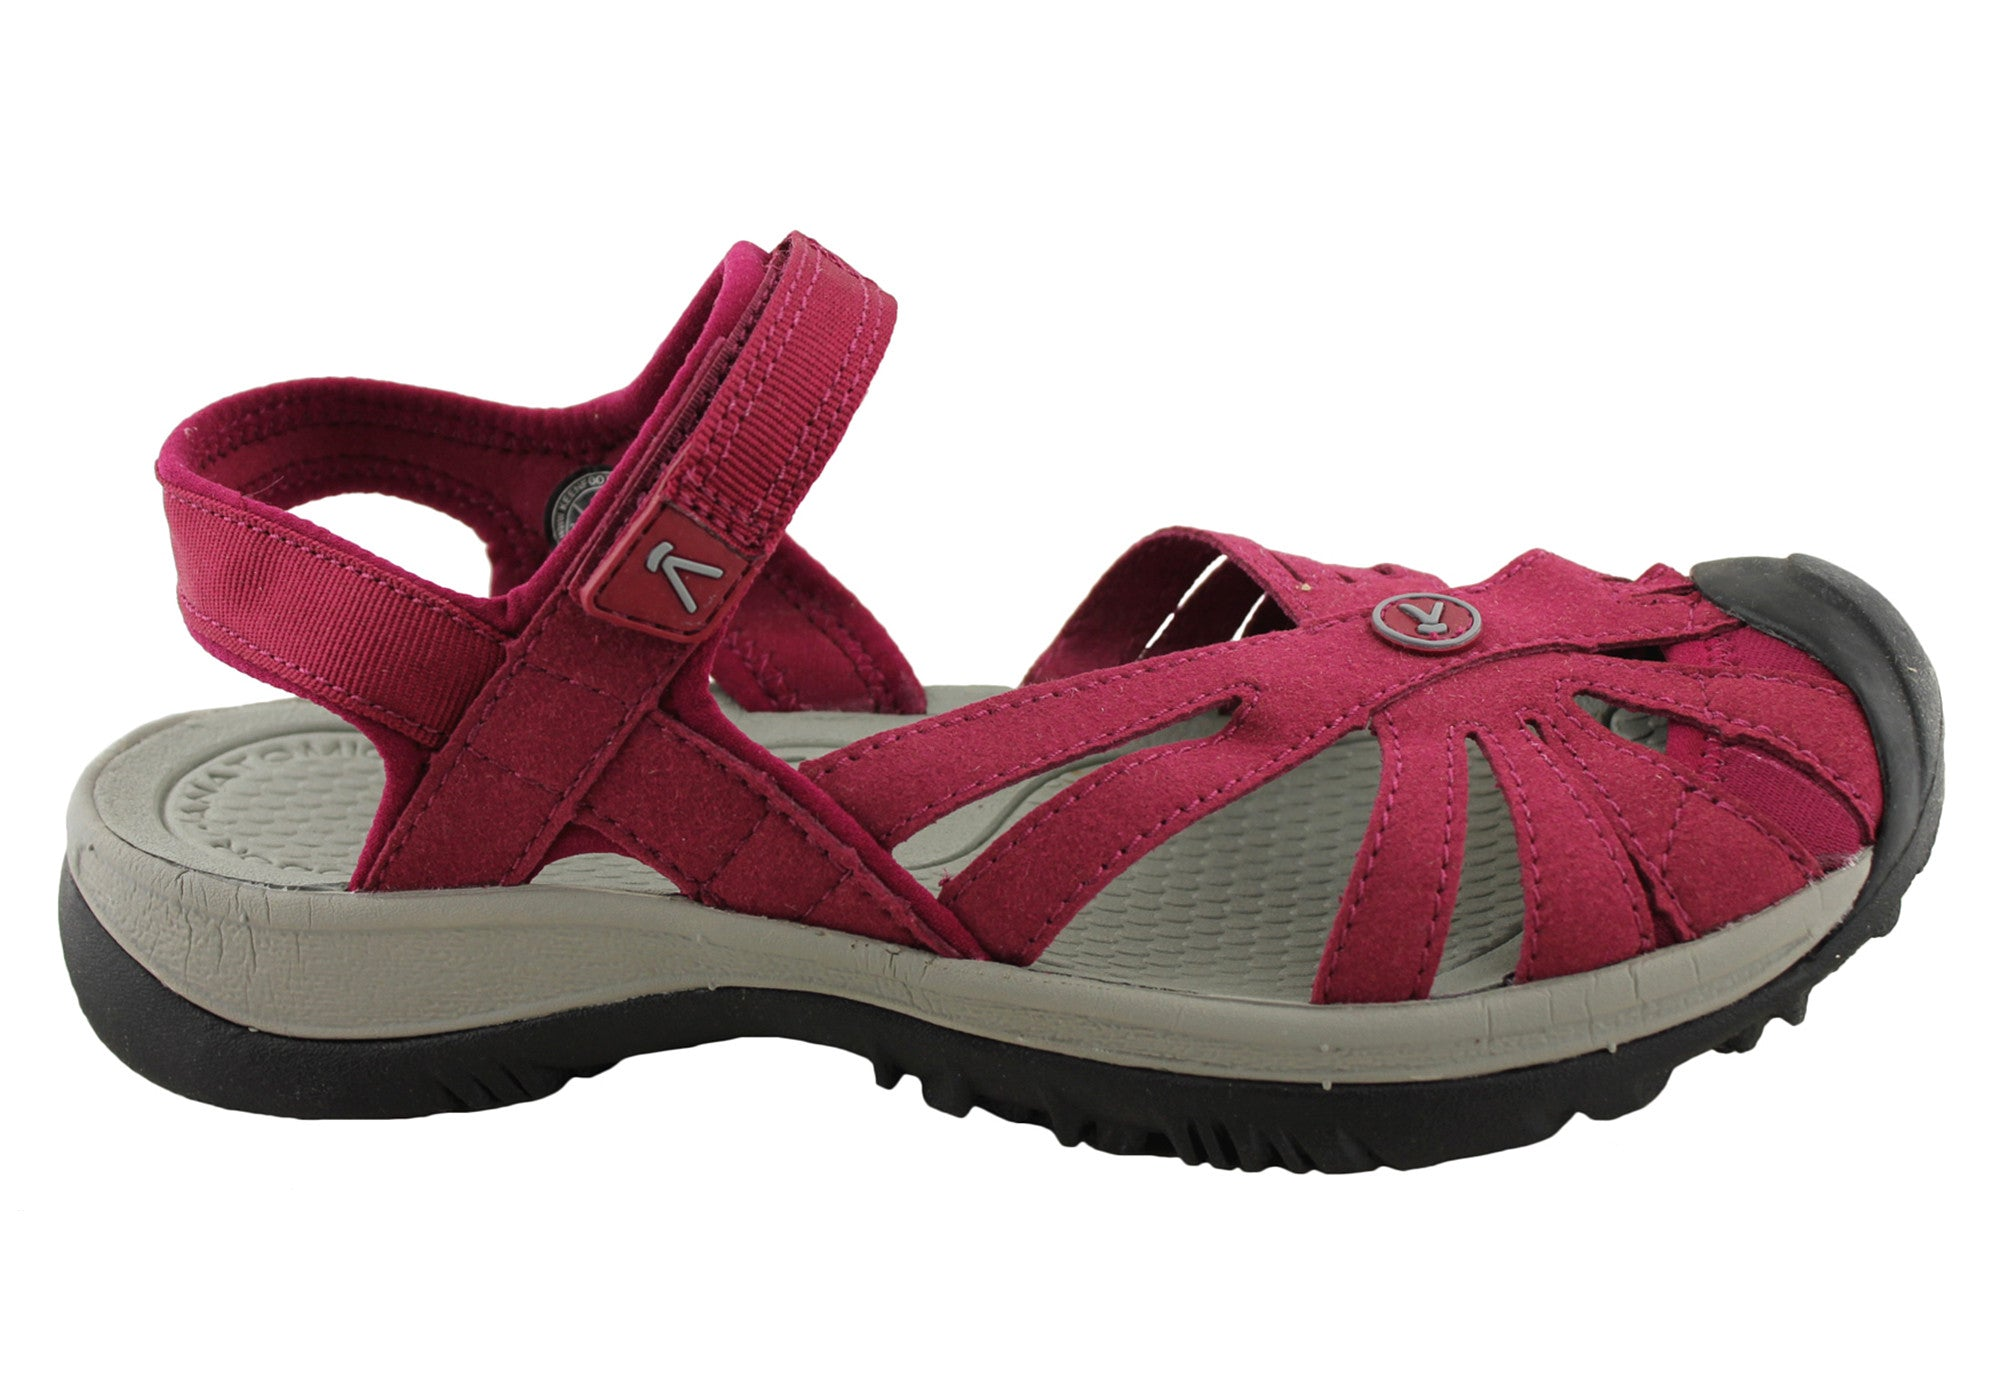 Keen Rose Womens fortable Washable Sandals